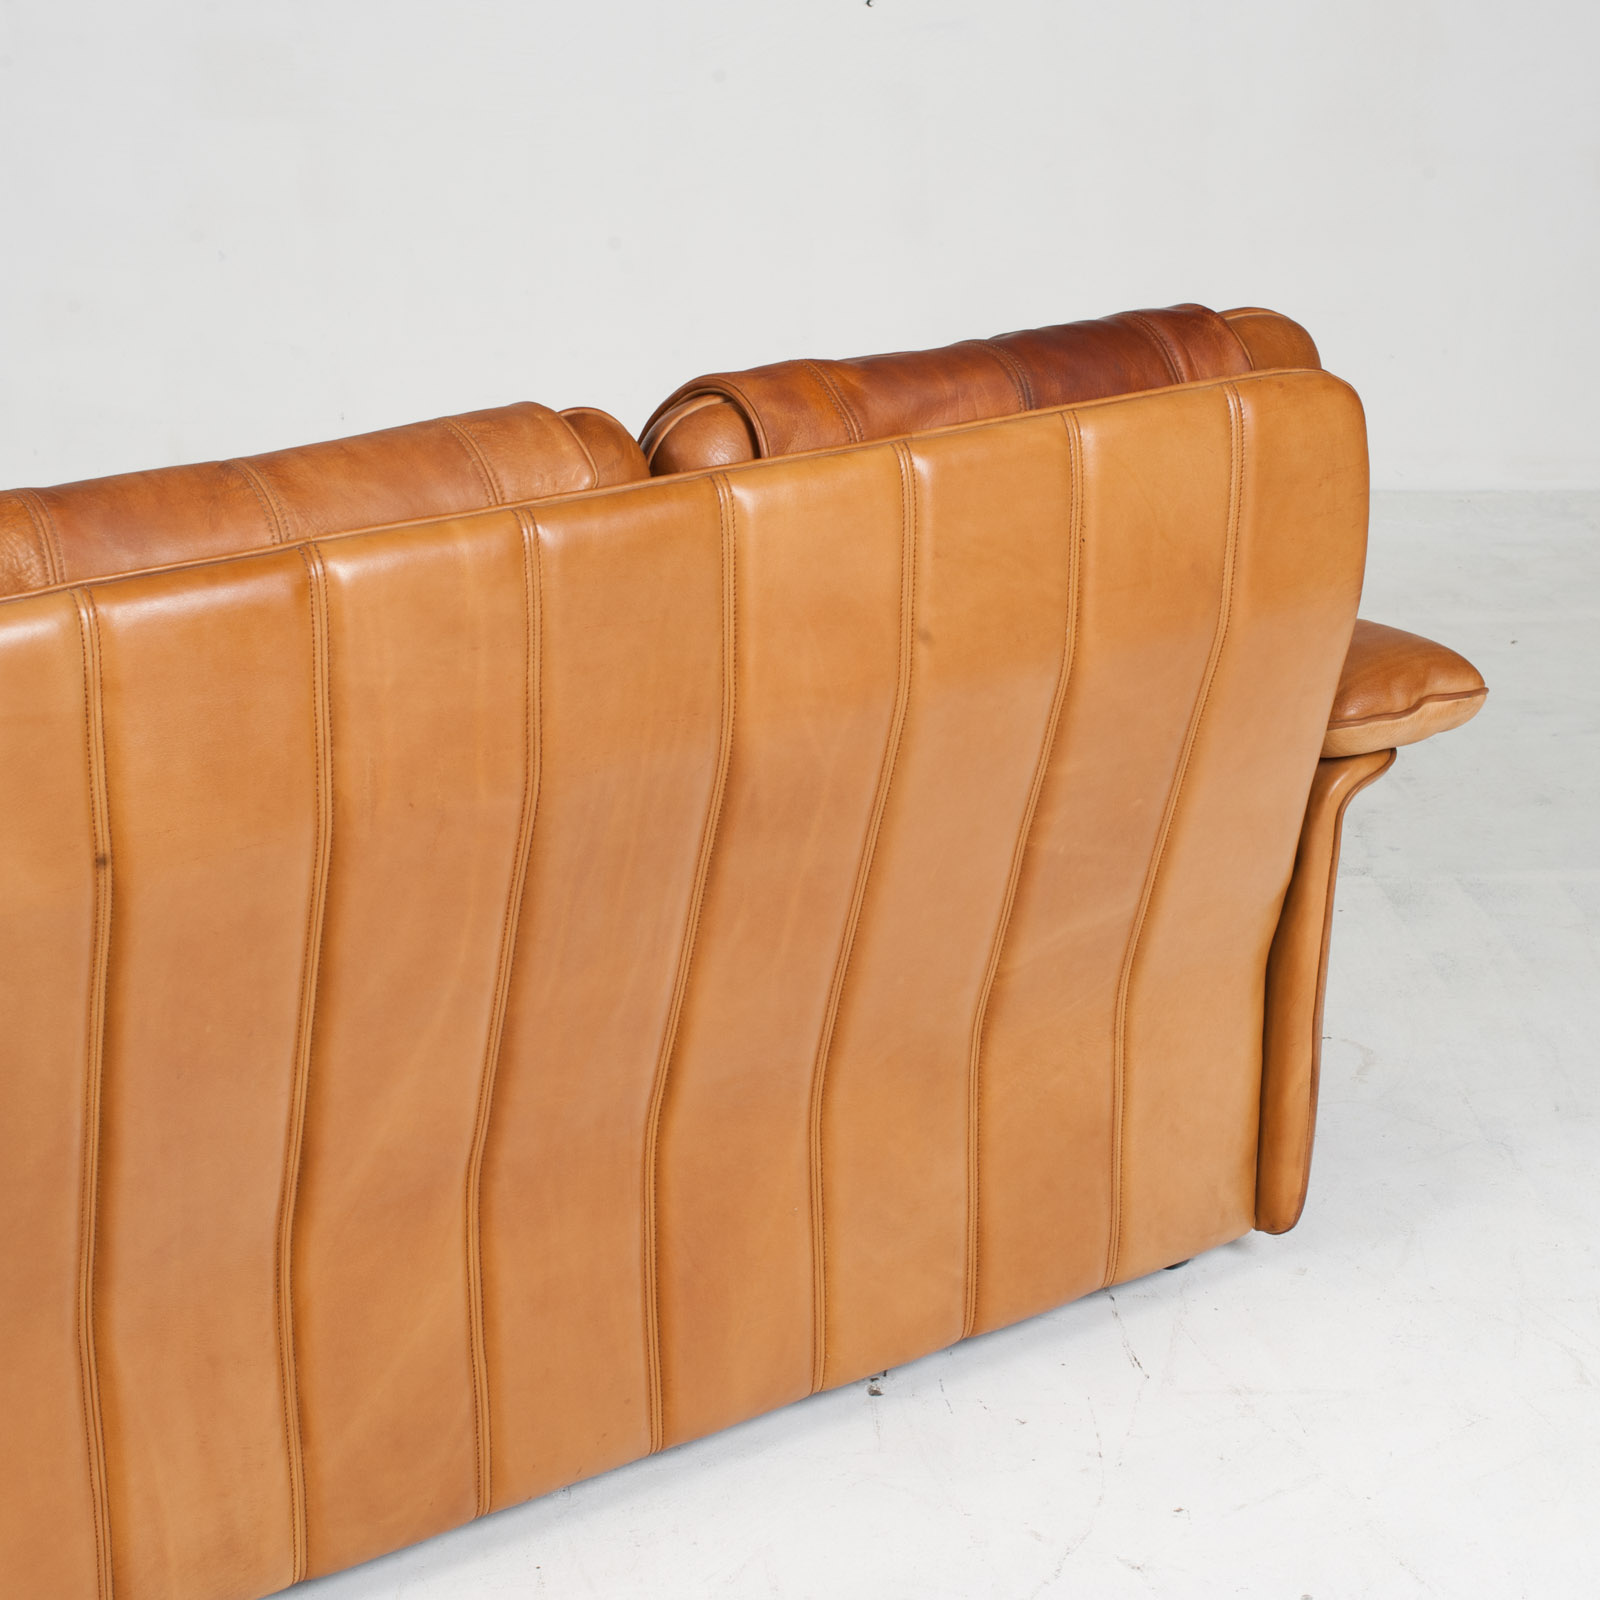 3 Seat Sofa By De Sede In Tan Leather 1970s Switzerland 13